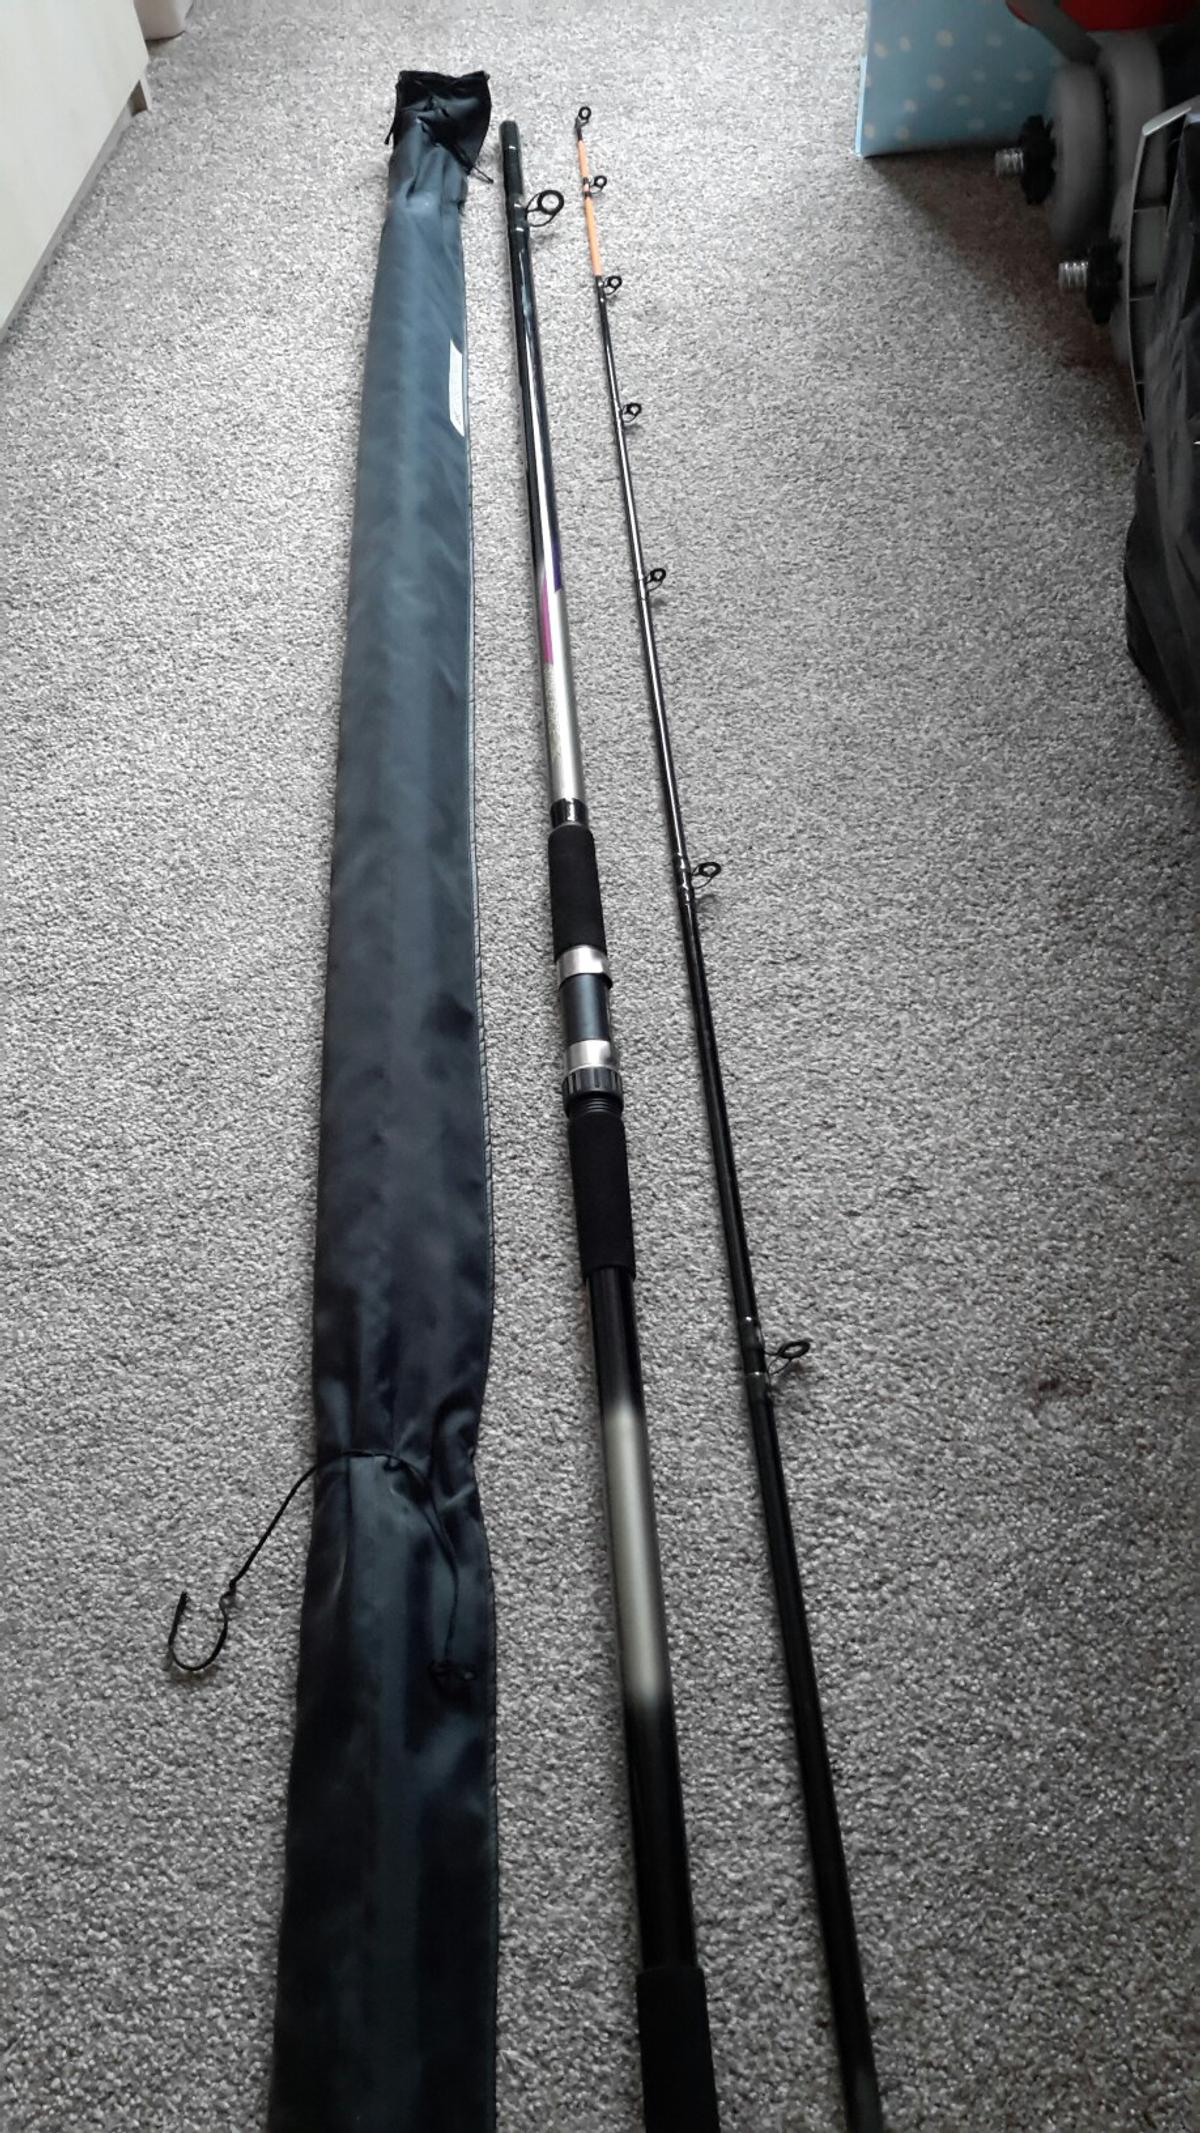 Sea fishing rod (beachcasting) and reel. in Wigan für £ 30